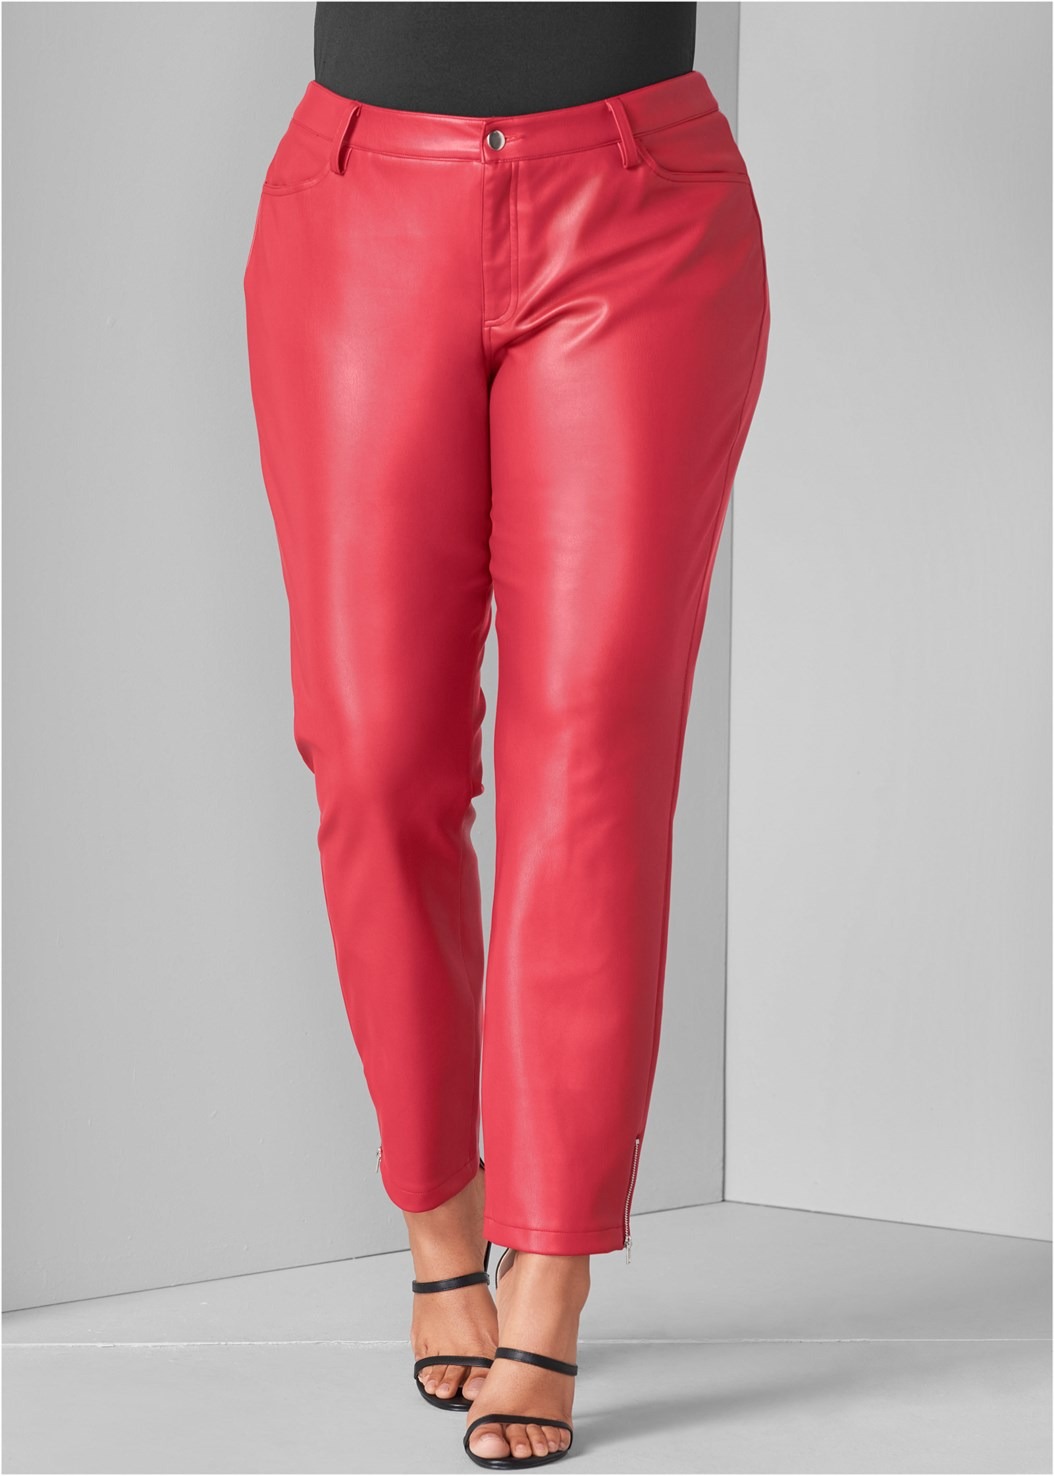 Faux Leather Pants,Seamless Fitted Cut Out Top,High Heel Strappy Sandals,Tiger Detail Earrings